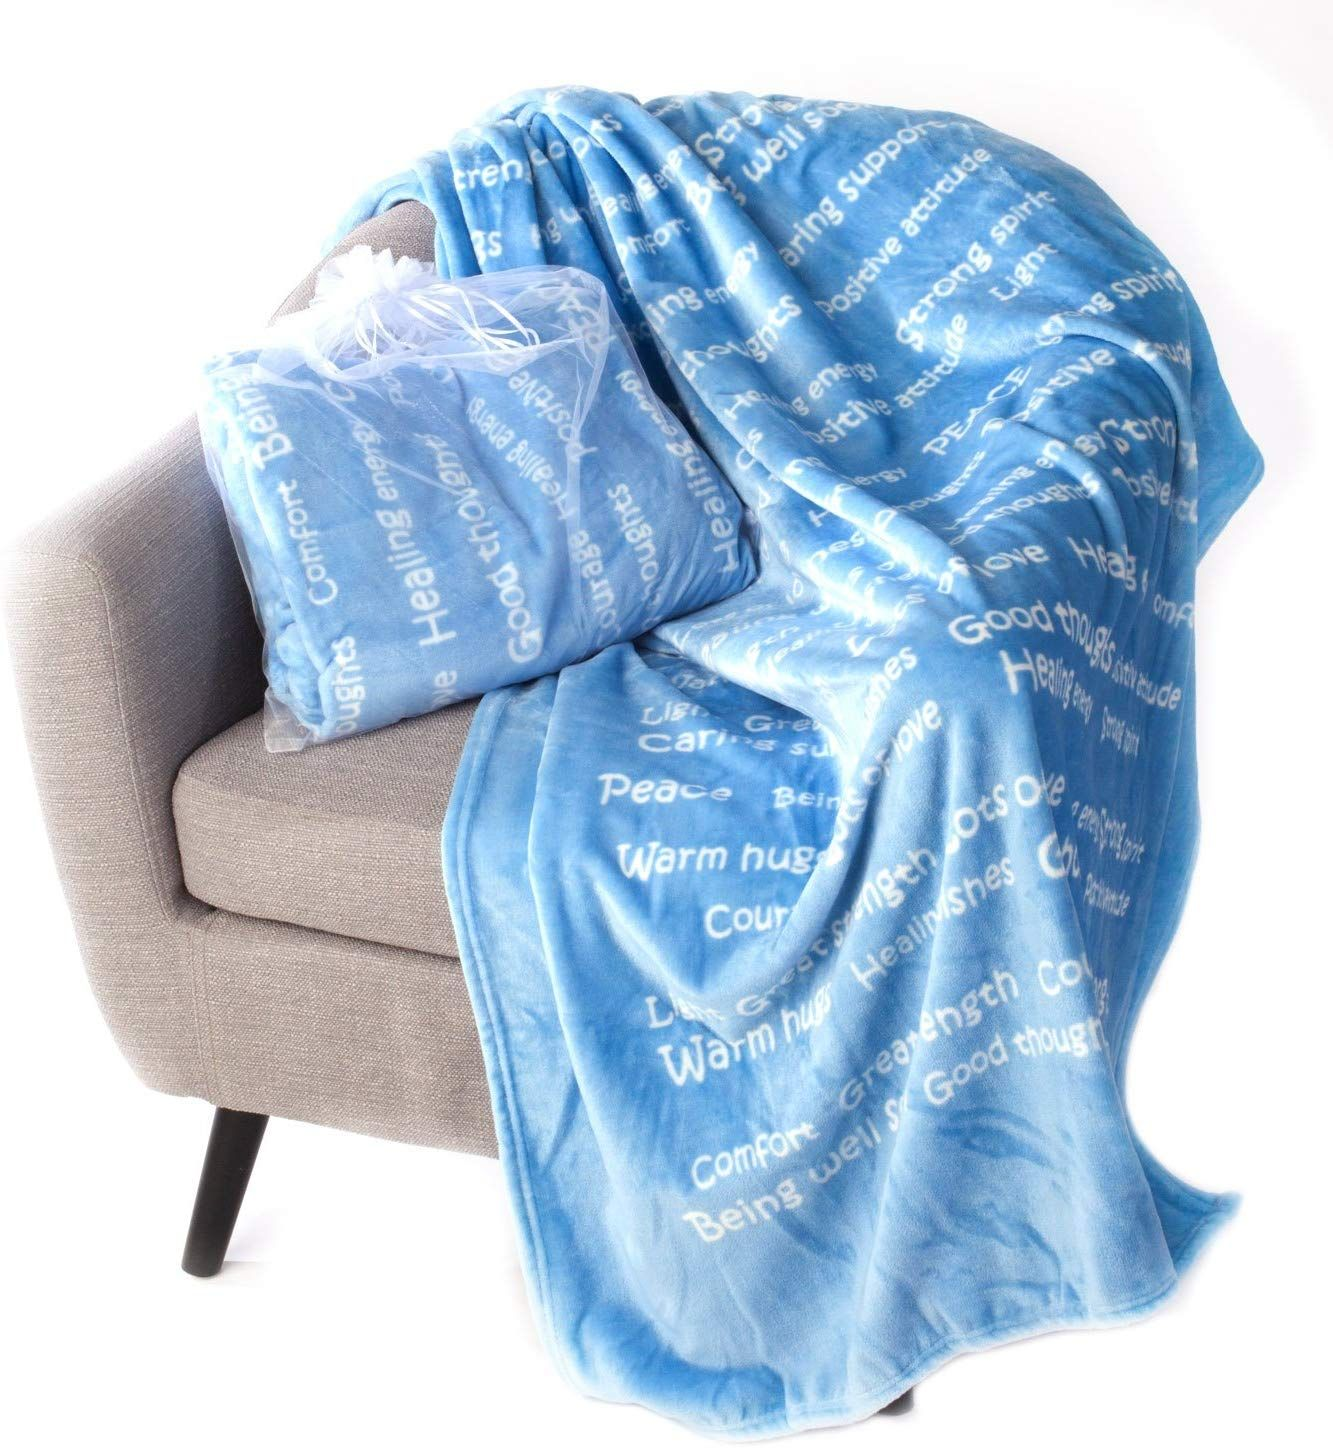 BlankieGram Healing Thoughts Blanket The